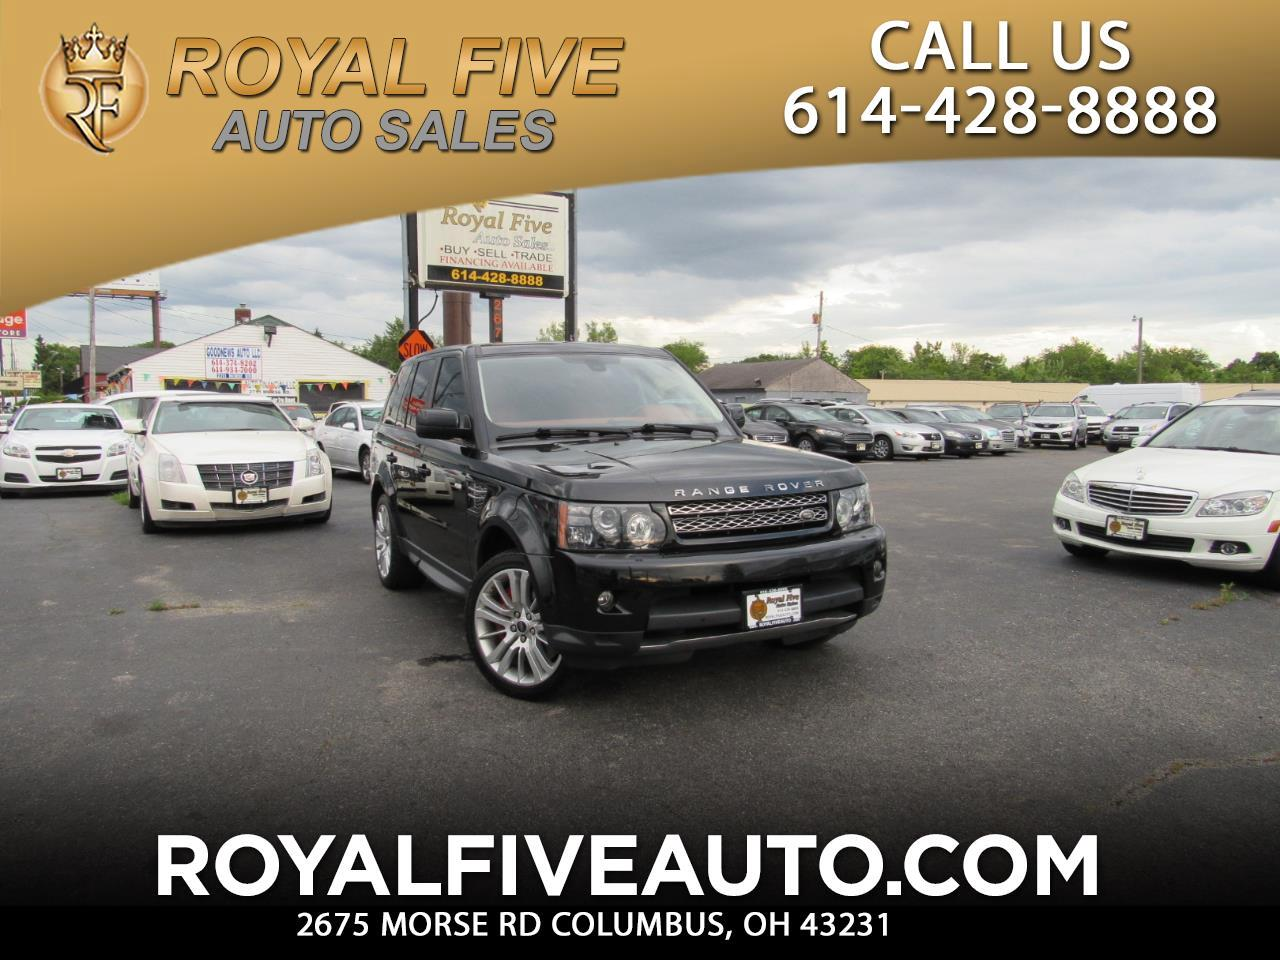 2013 Land Rover Range Rover Sport 5.0L V8 Supercharged Autobiography